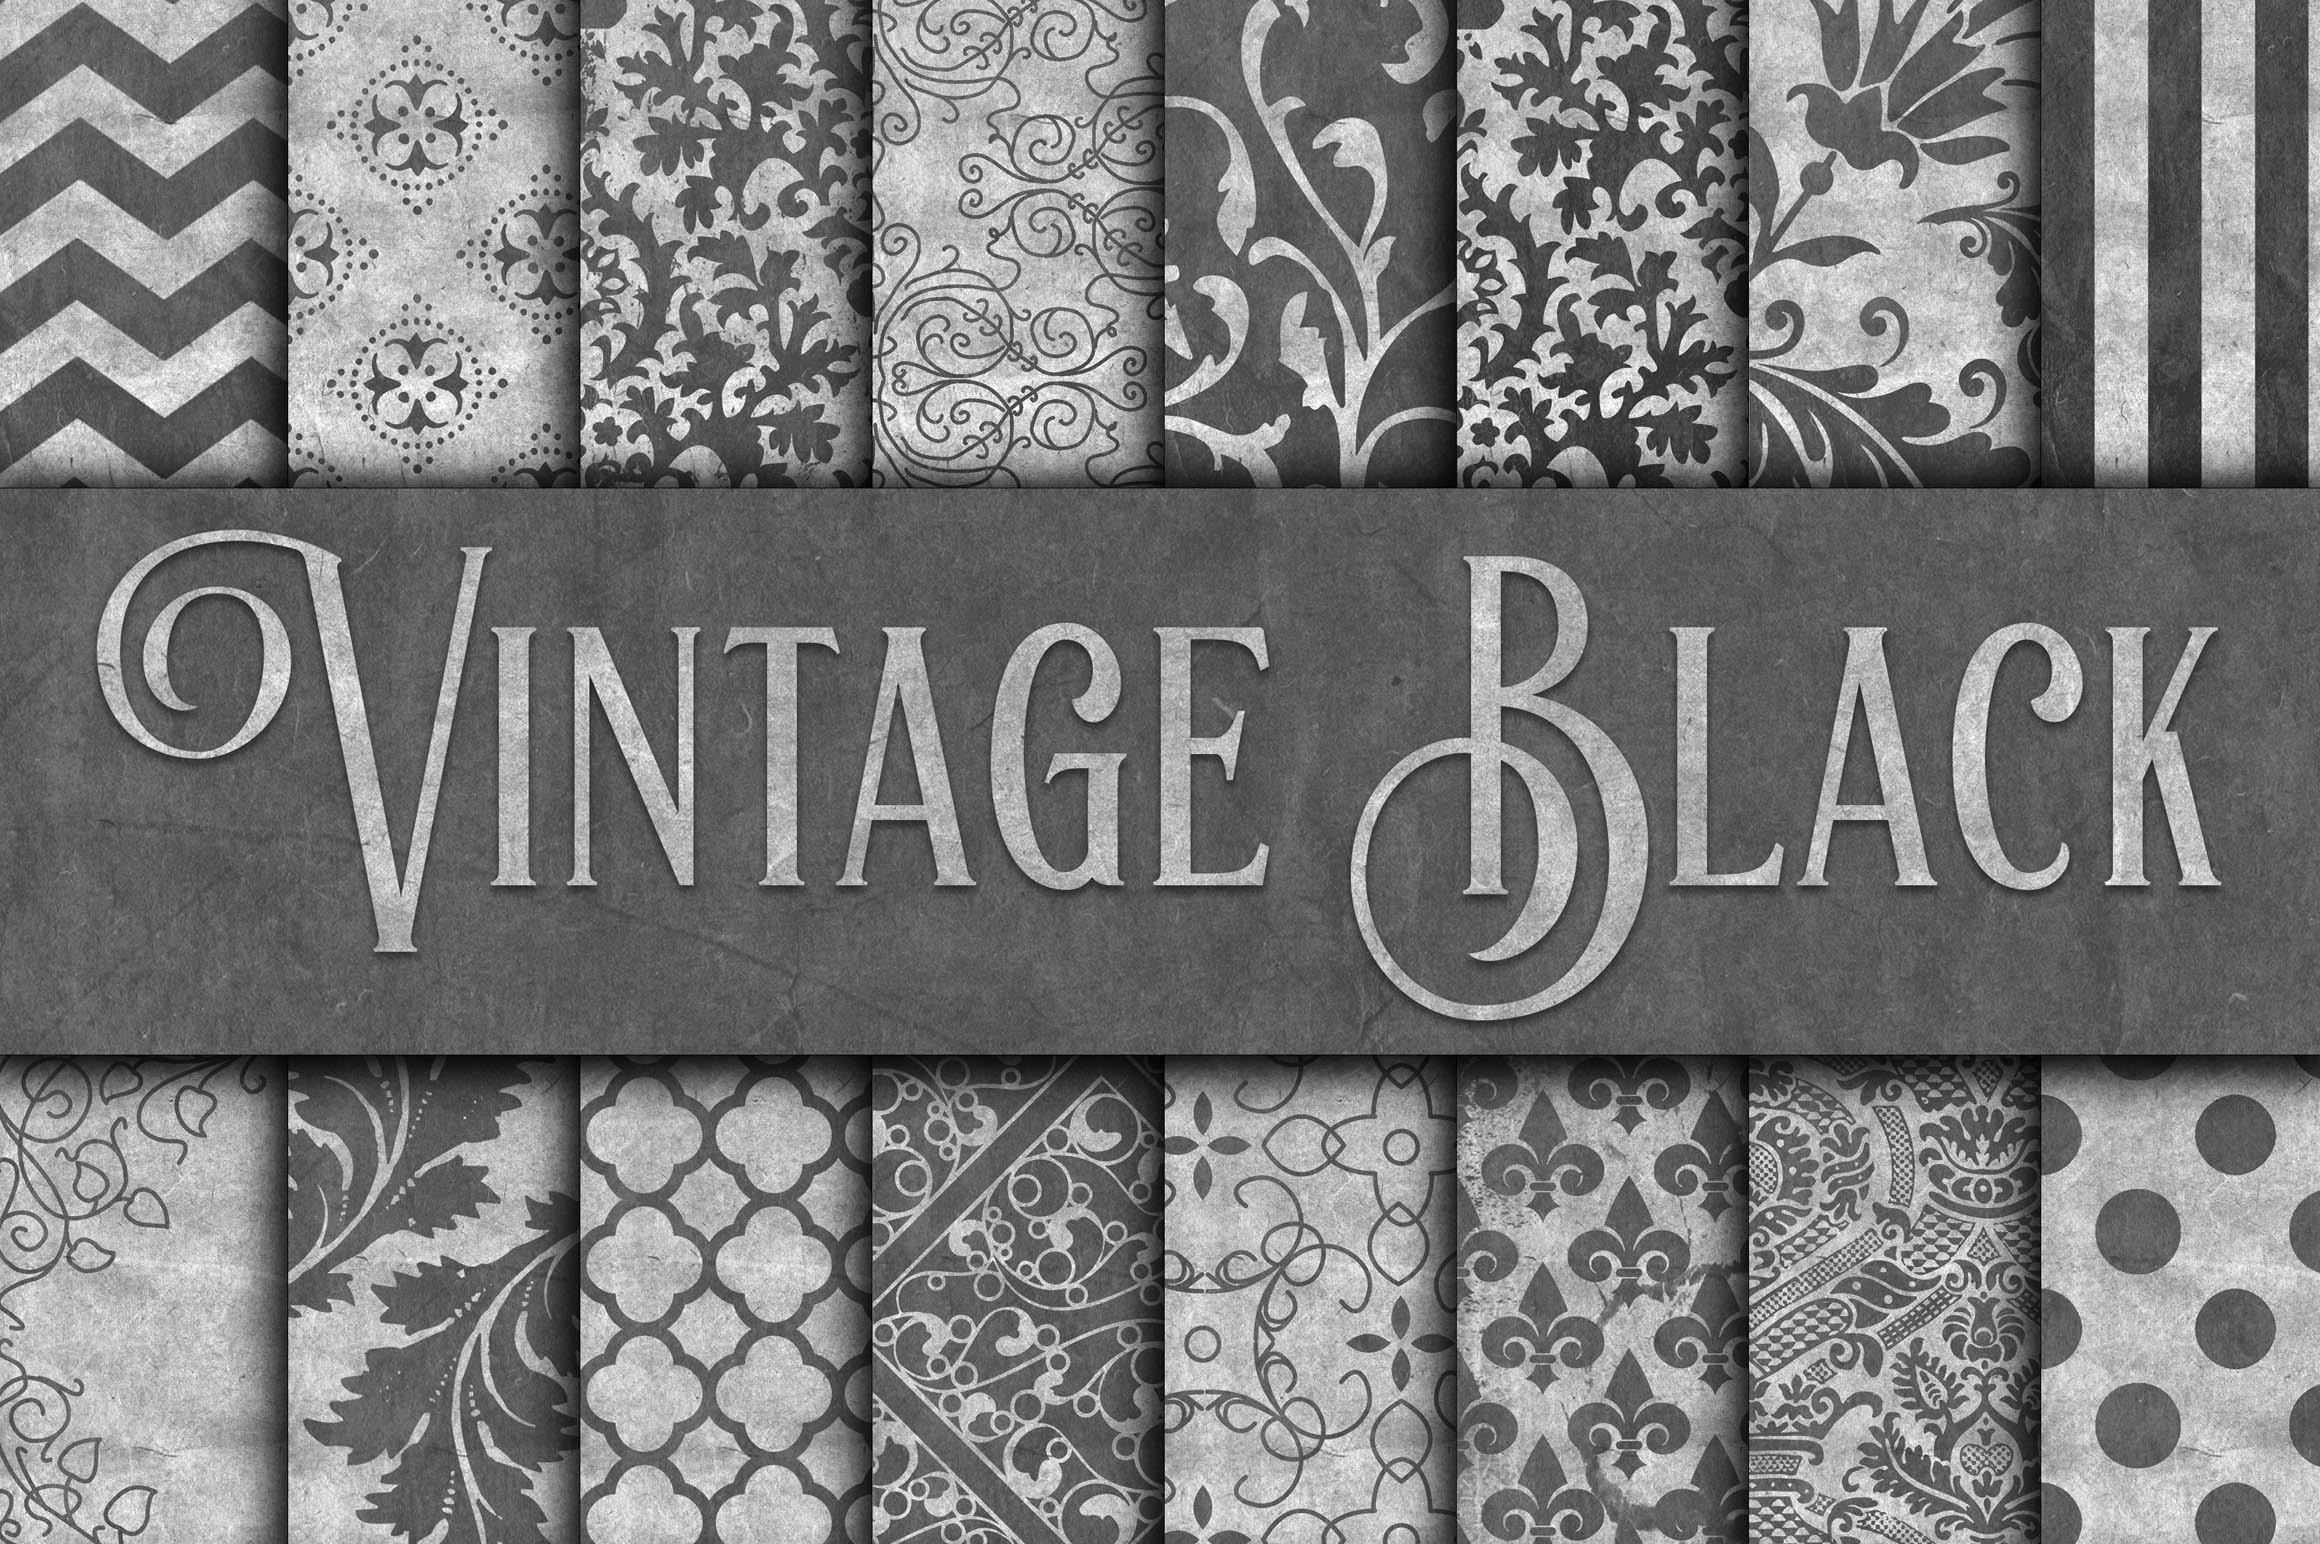 Vintage Black Digital Paper Graphic By Oldmarketdesigns